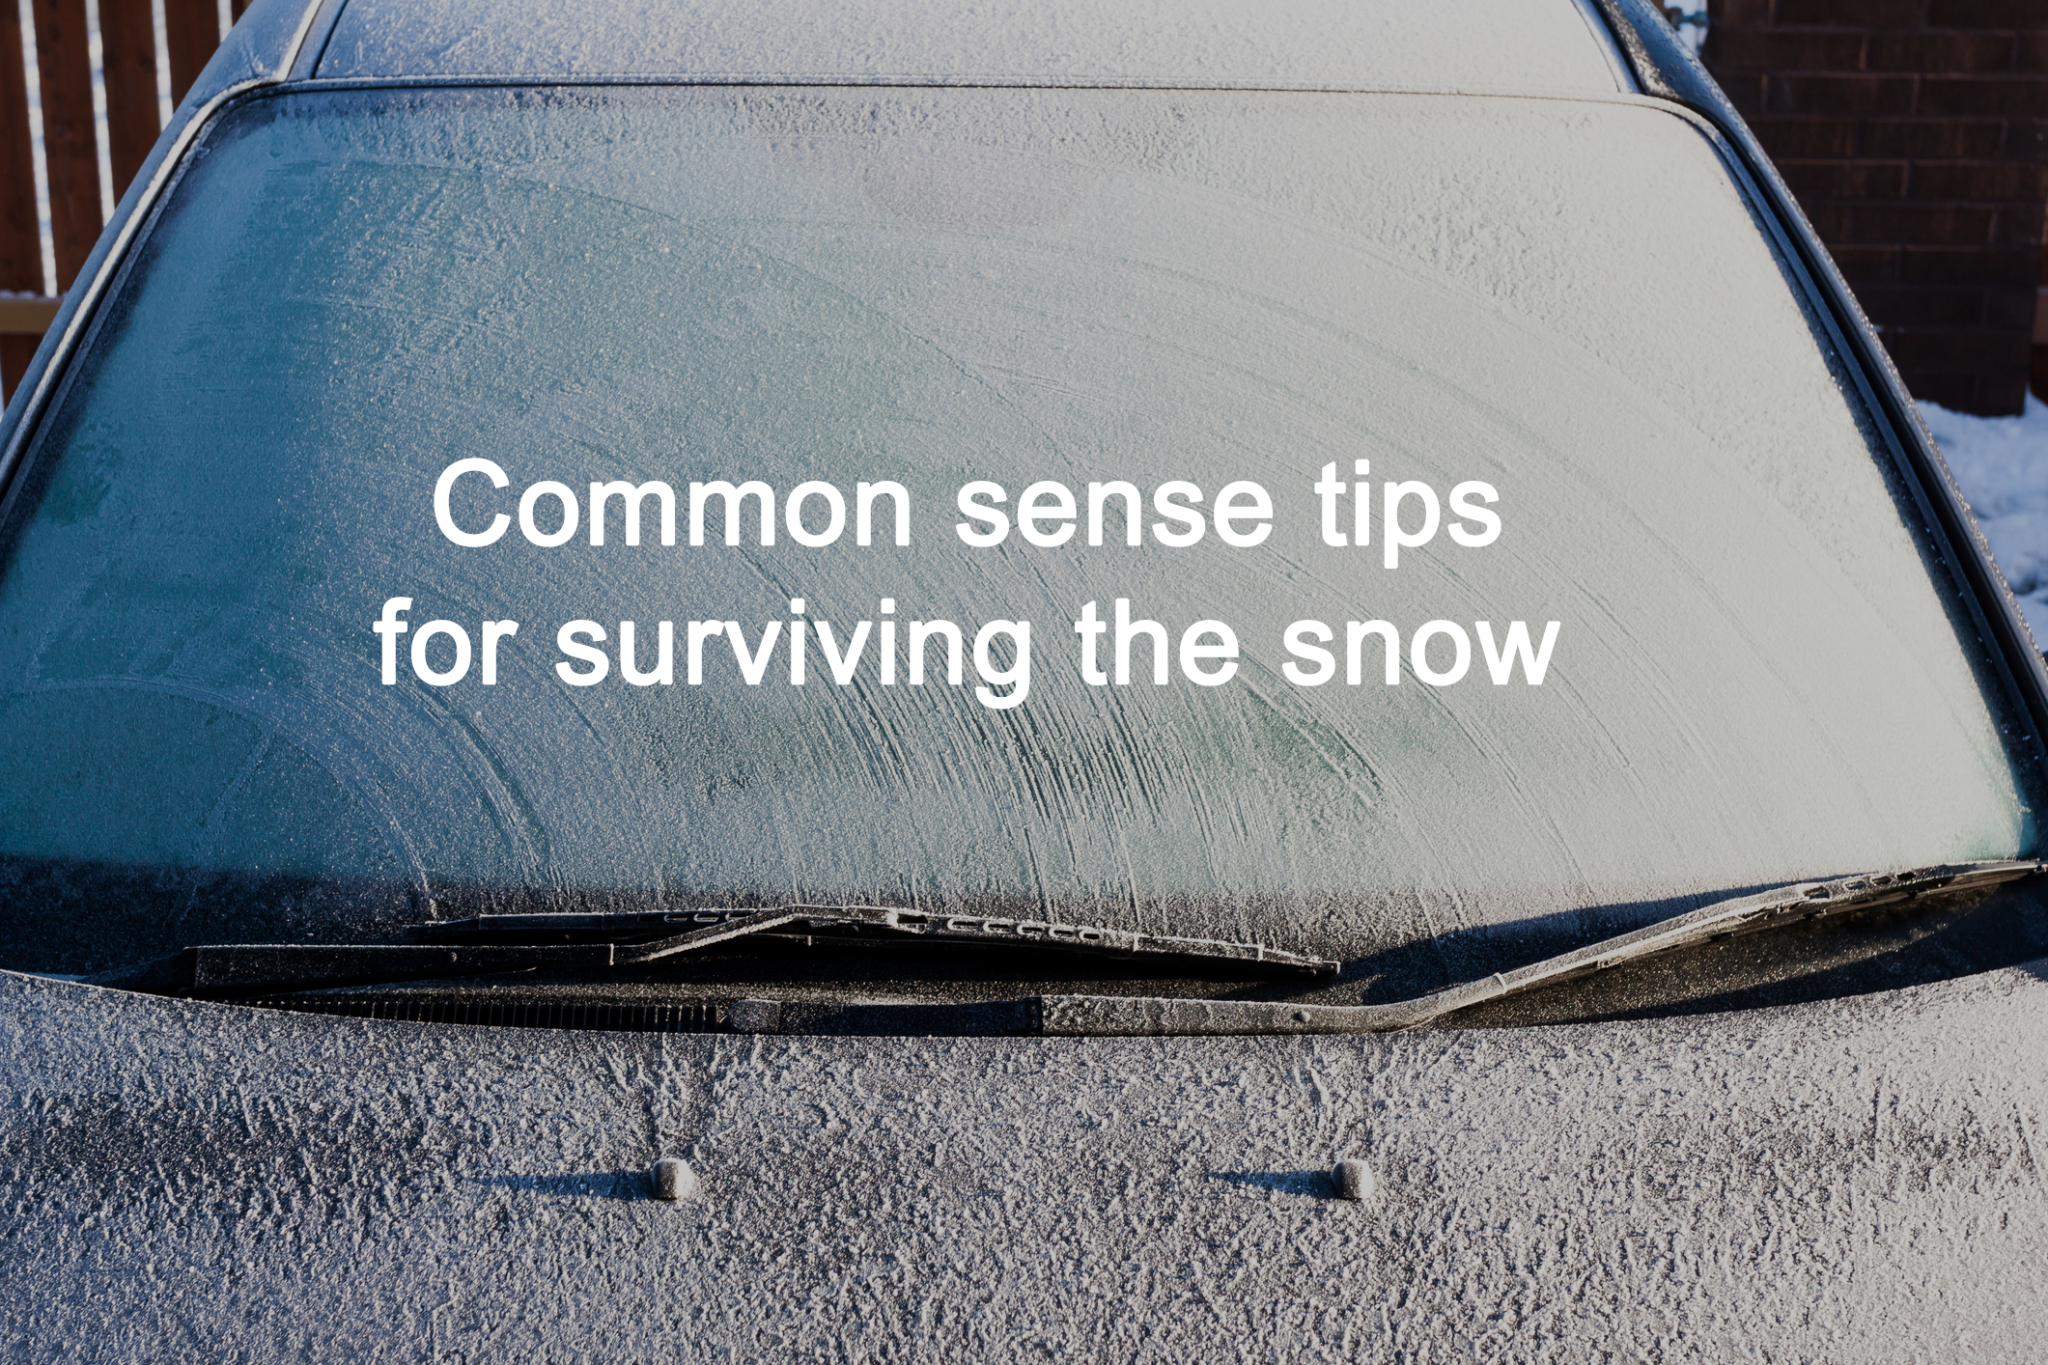 Poll: Washington drivers believe they're 'very skilled' at driving in the snow